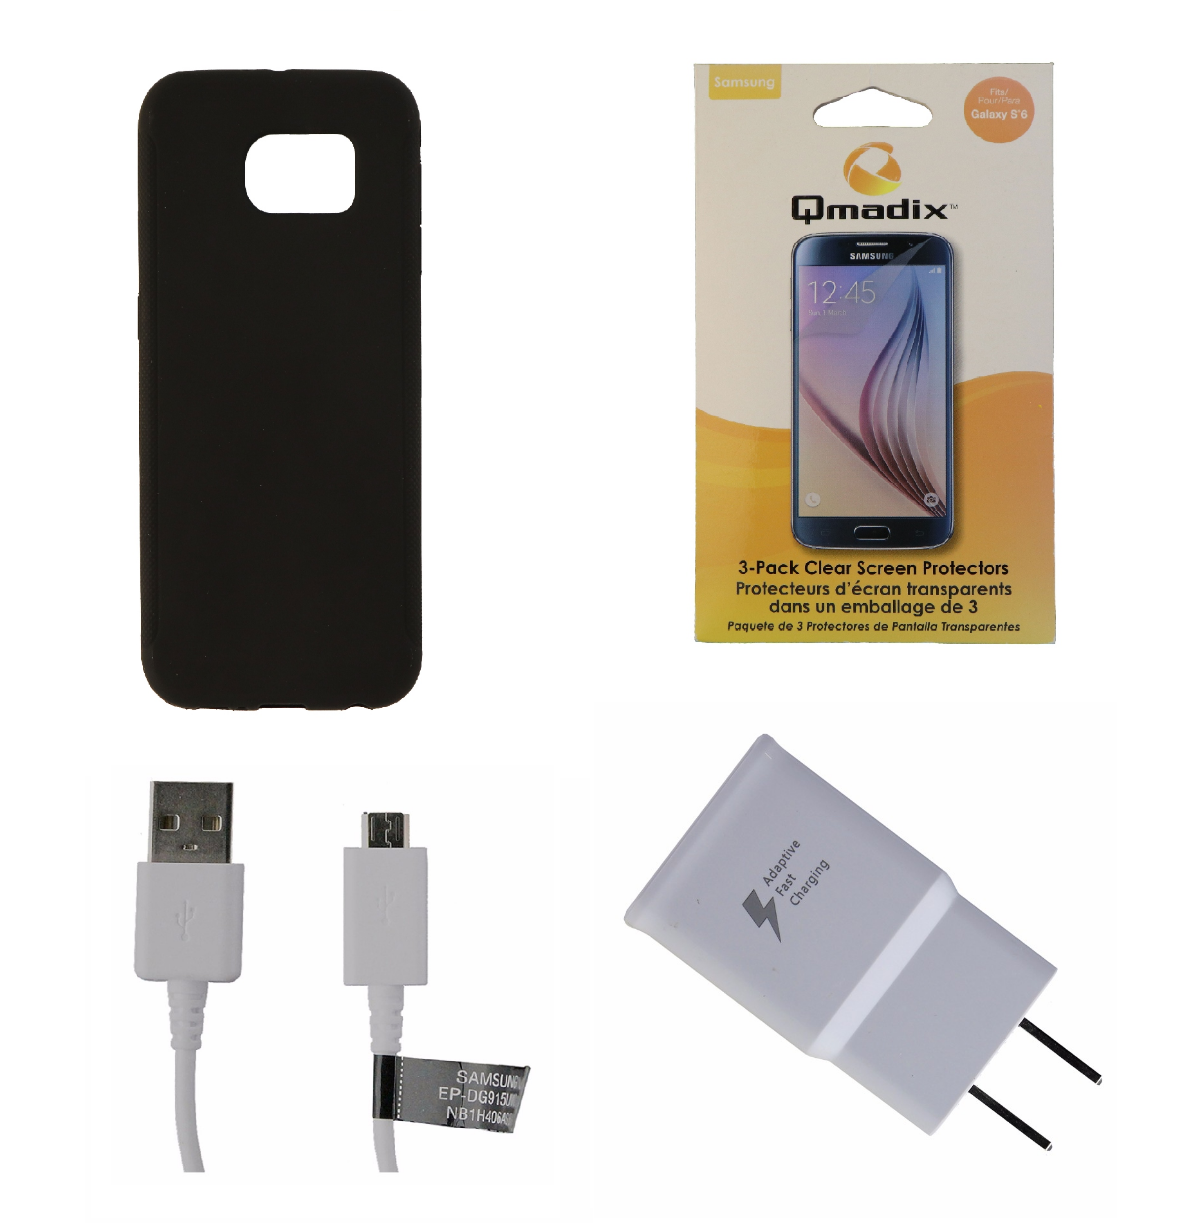 OEM Adapter & Cable + Screen Protector KIT w/ Black Insignia